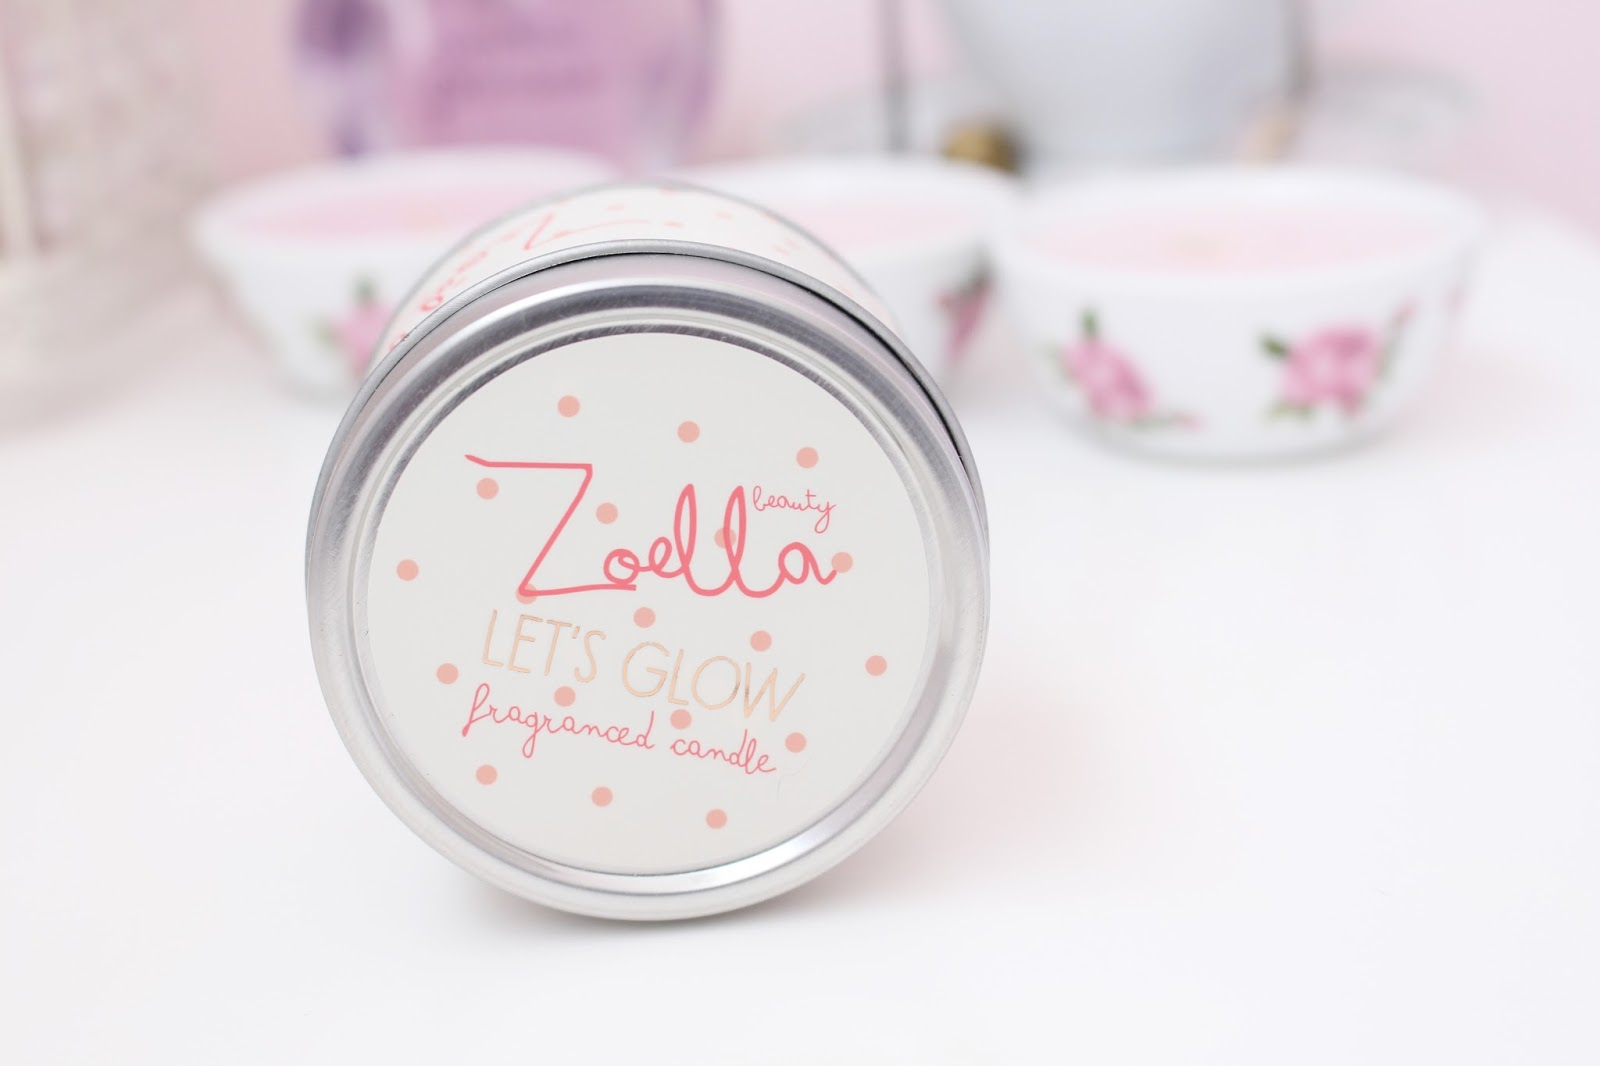 Zoella Beauty Review